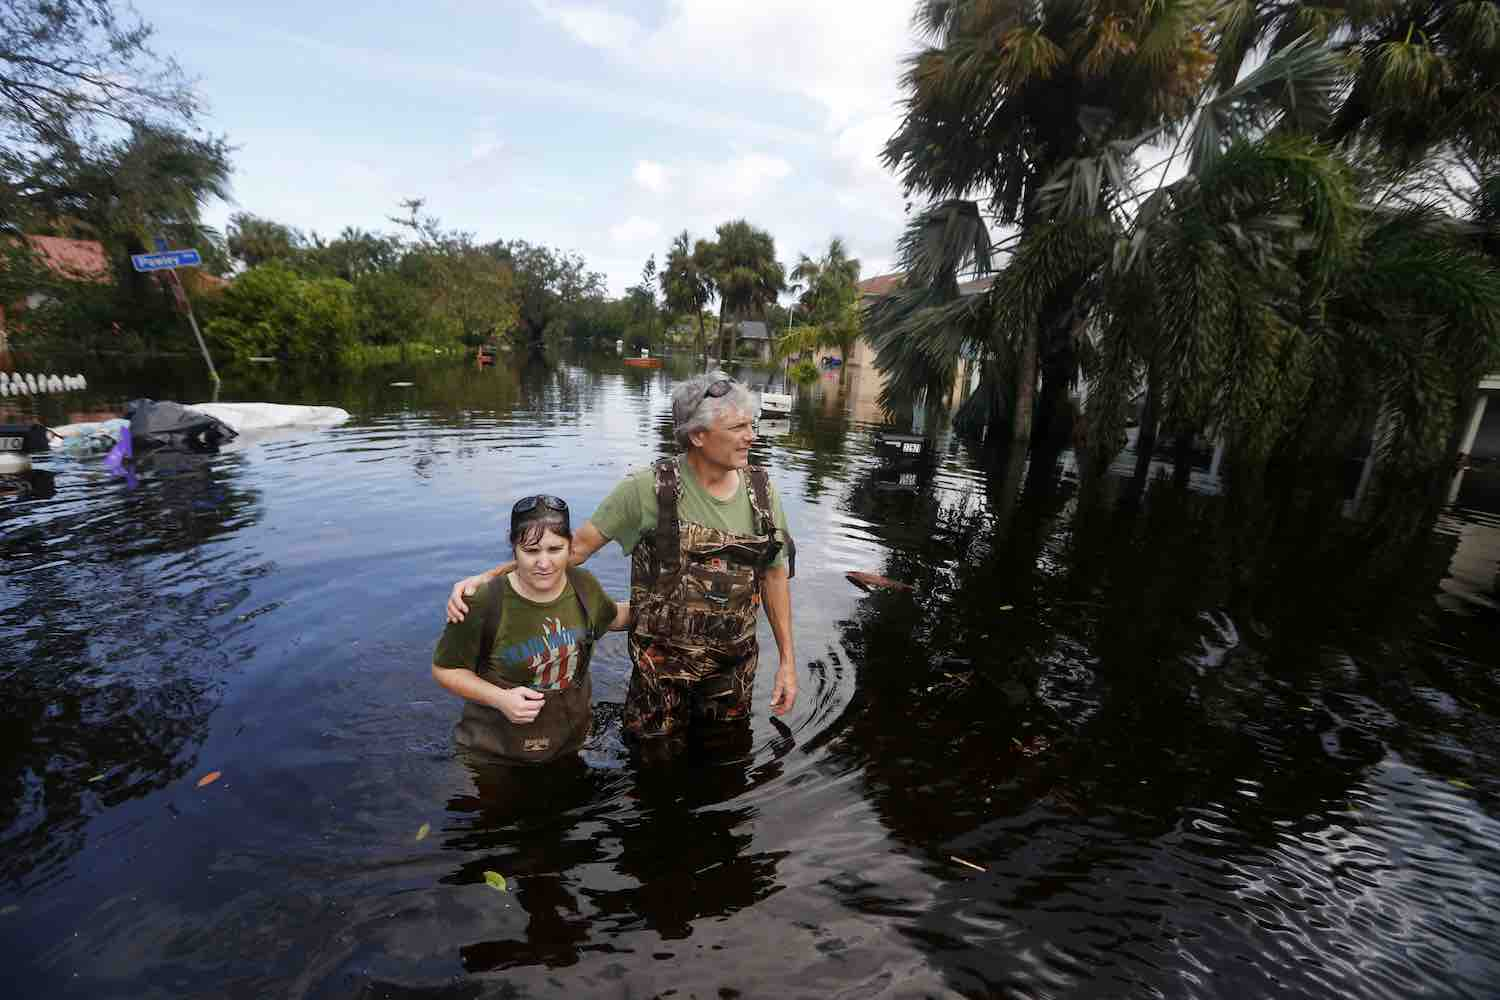 <div class='meta'><div class='origin-logo' data-origin='Creative Content'></div><span class='caption-text' data-credit='AP Photo/Gerald Herbert'>Kelly McClenthen returns to see the flood damage to her home with her boyfriend Daniel Harrison in the aftermath of Hurricane Irma in Bonita Springs, Fla., Monday, Sept. 11, 2017.</span></div>